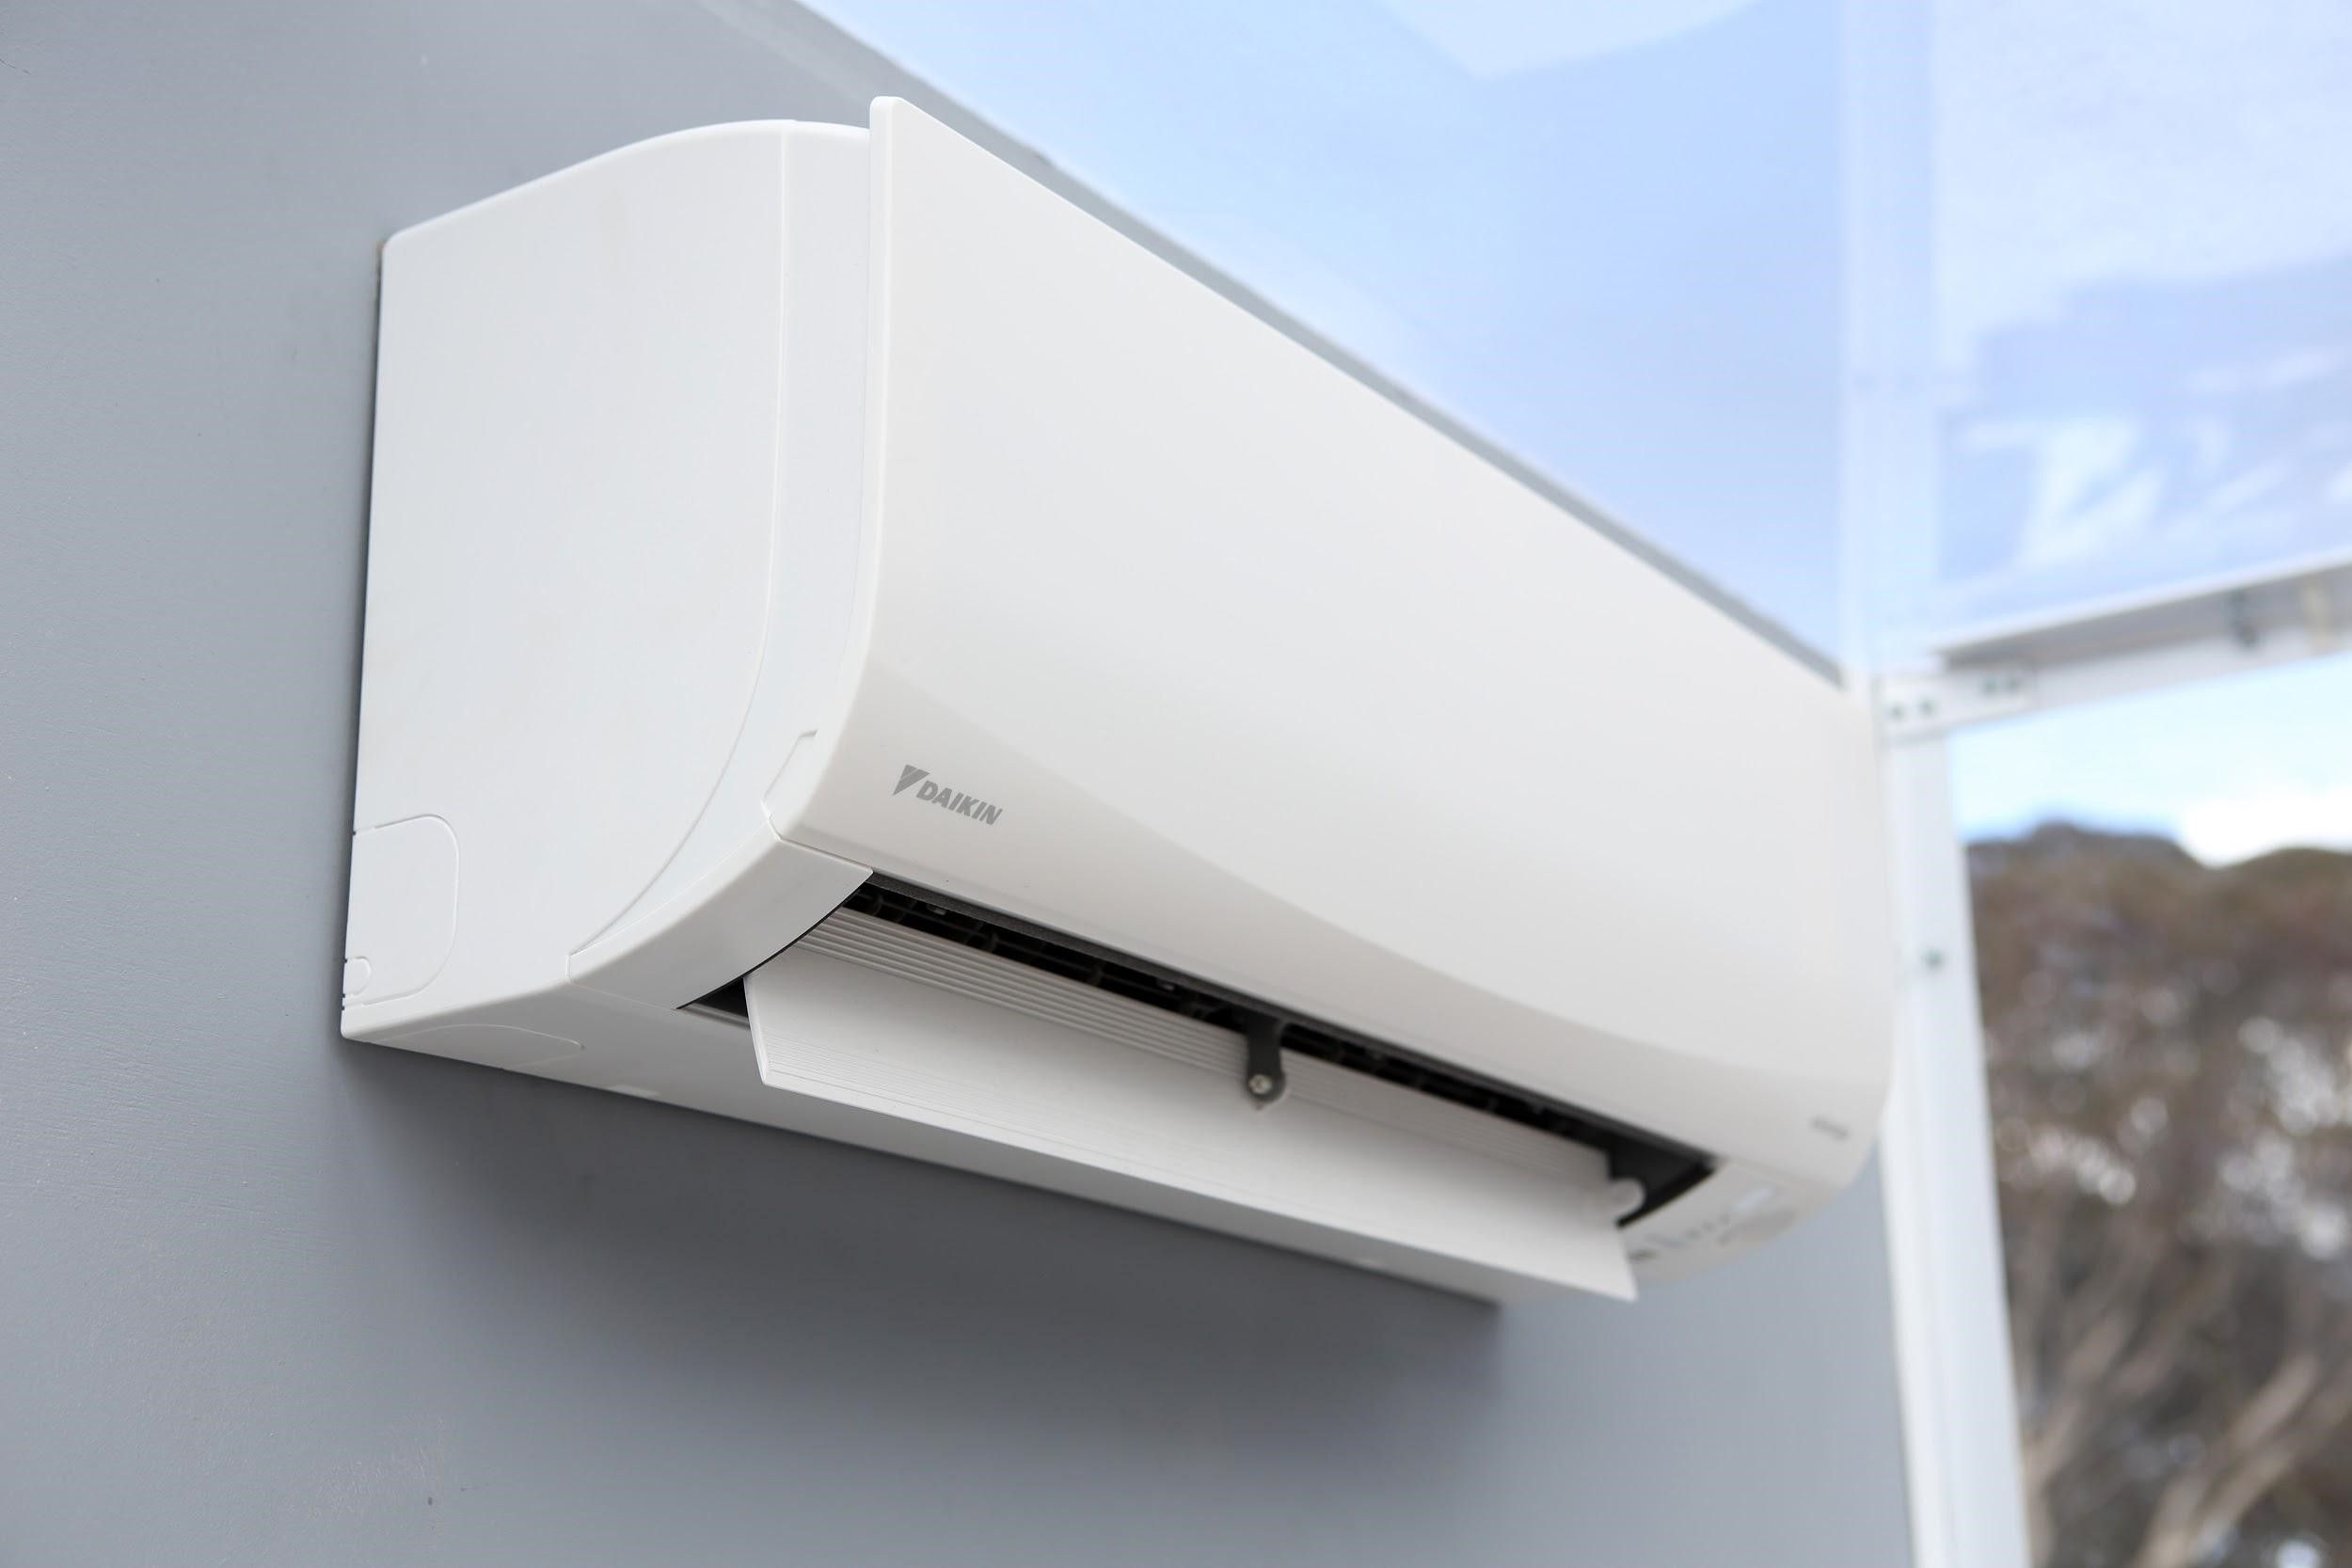 Did you know that as the temperature rises, a Daikin